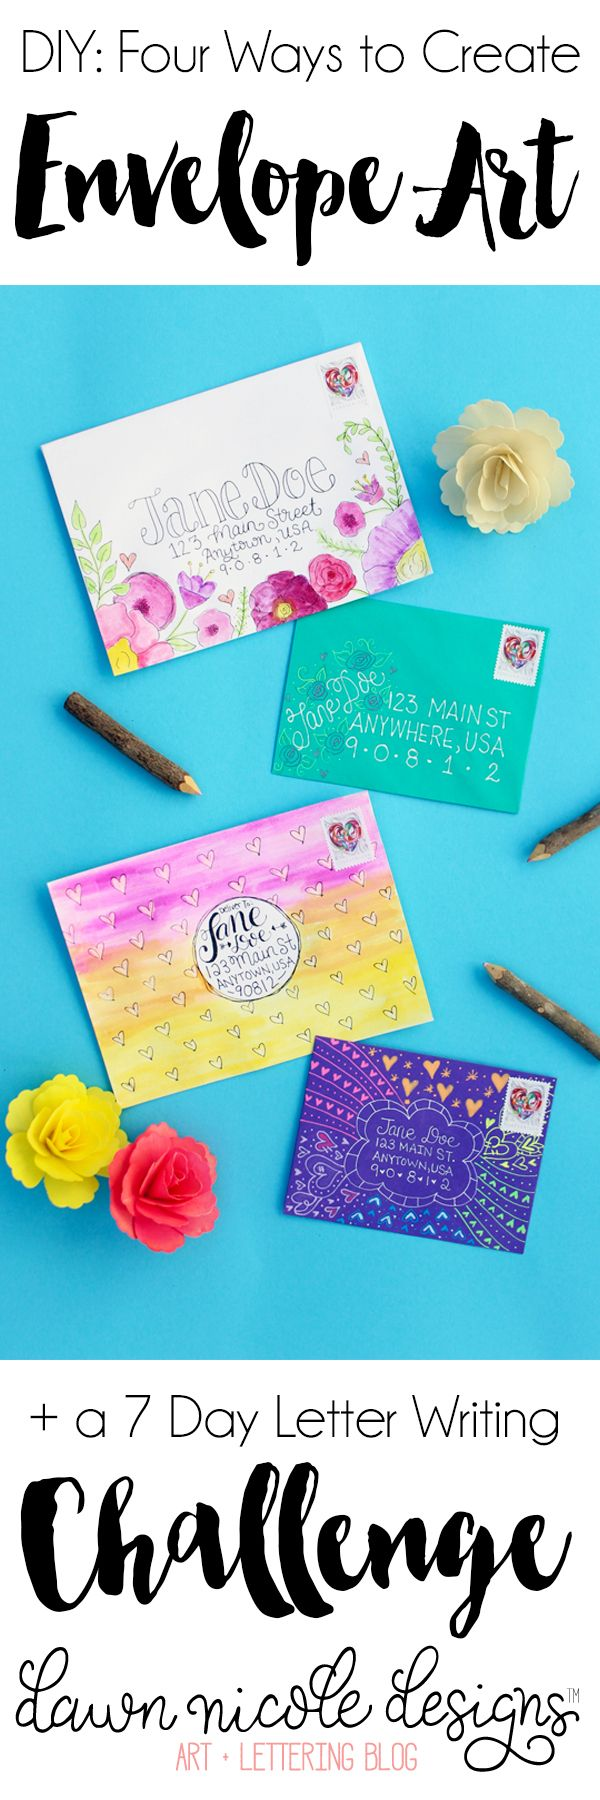 A handwritten note and artsy envelope can bring someone so much joy! I've teamed up with @howlifeunfolds to show you fun and cheerful ways to up your Happy Mail Game. Pop over to the blog for Four Ways to Create Envelope Art + Join the 7 Day Lettering Writing Challenge in celebration of the Letters of Peace campaign. #lettersofpeace #DNDPartner